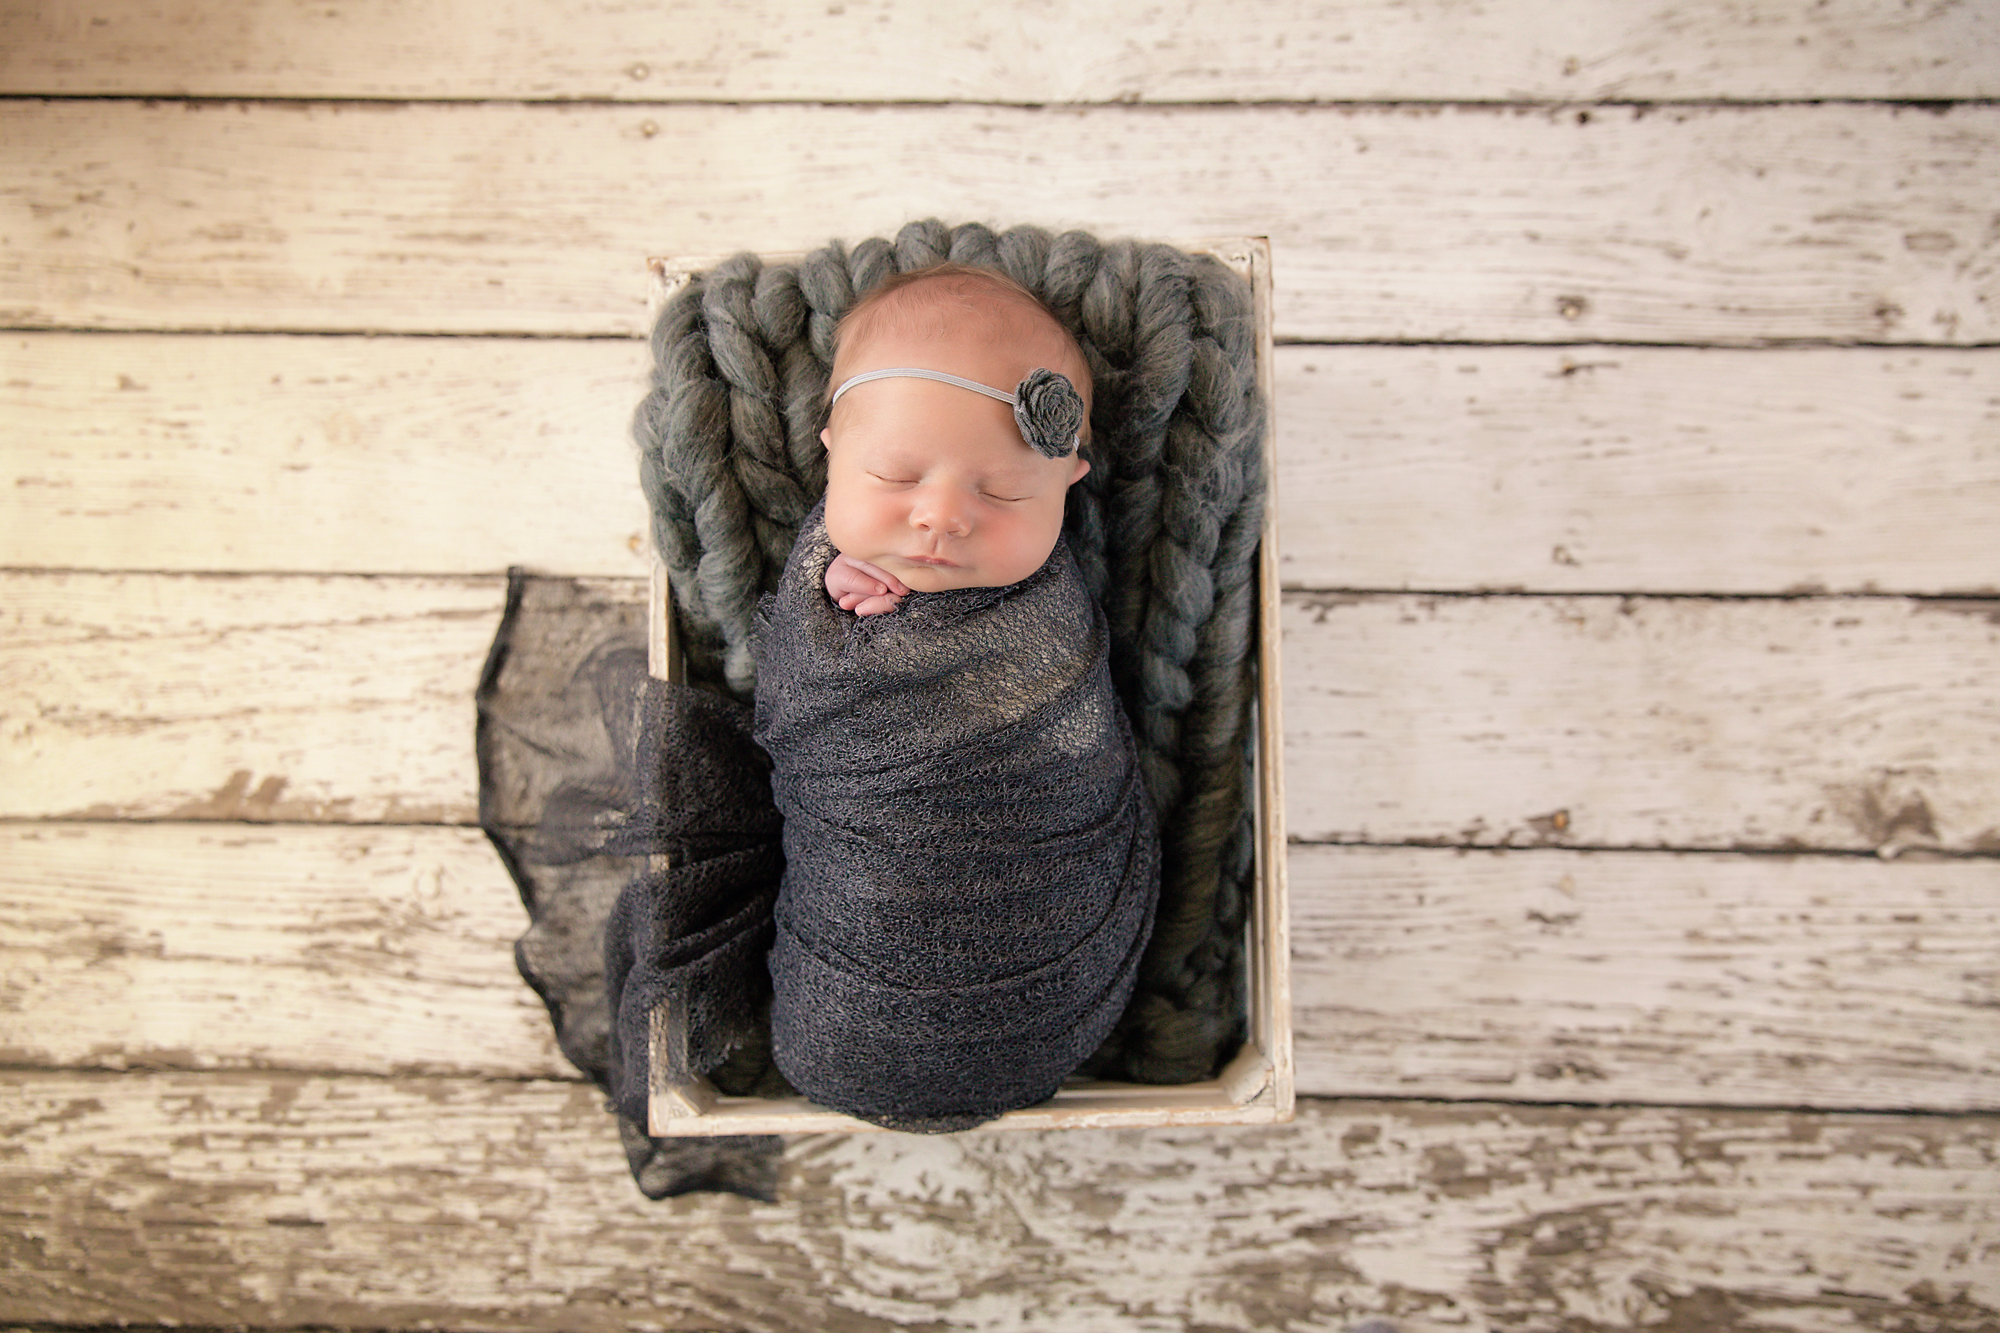 Newborn Photoshoot inspiration ideas. Calgary and Airdrie, Alberta Newborn and Baby photographer - Milashka Photography. Baby girl is wrapped in a grey wrap and is posed in a white crate.